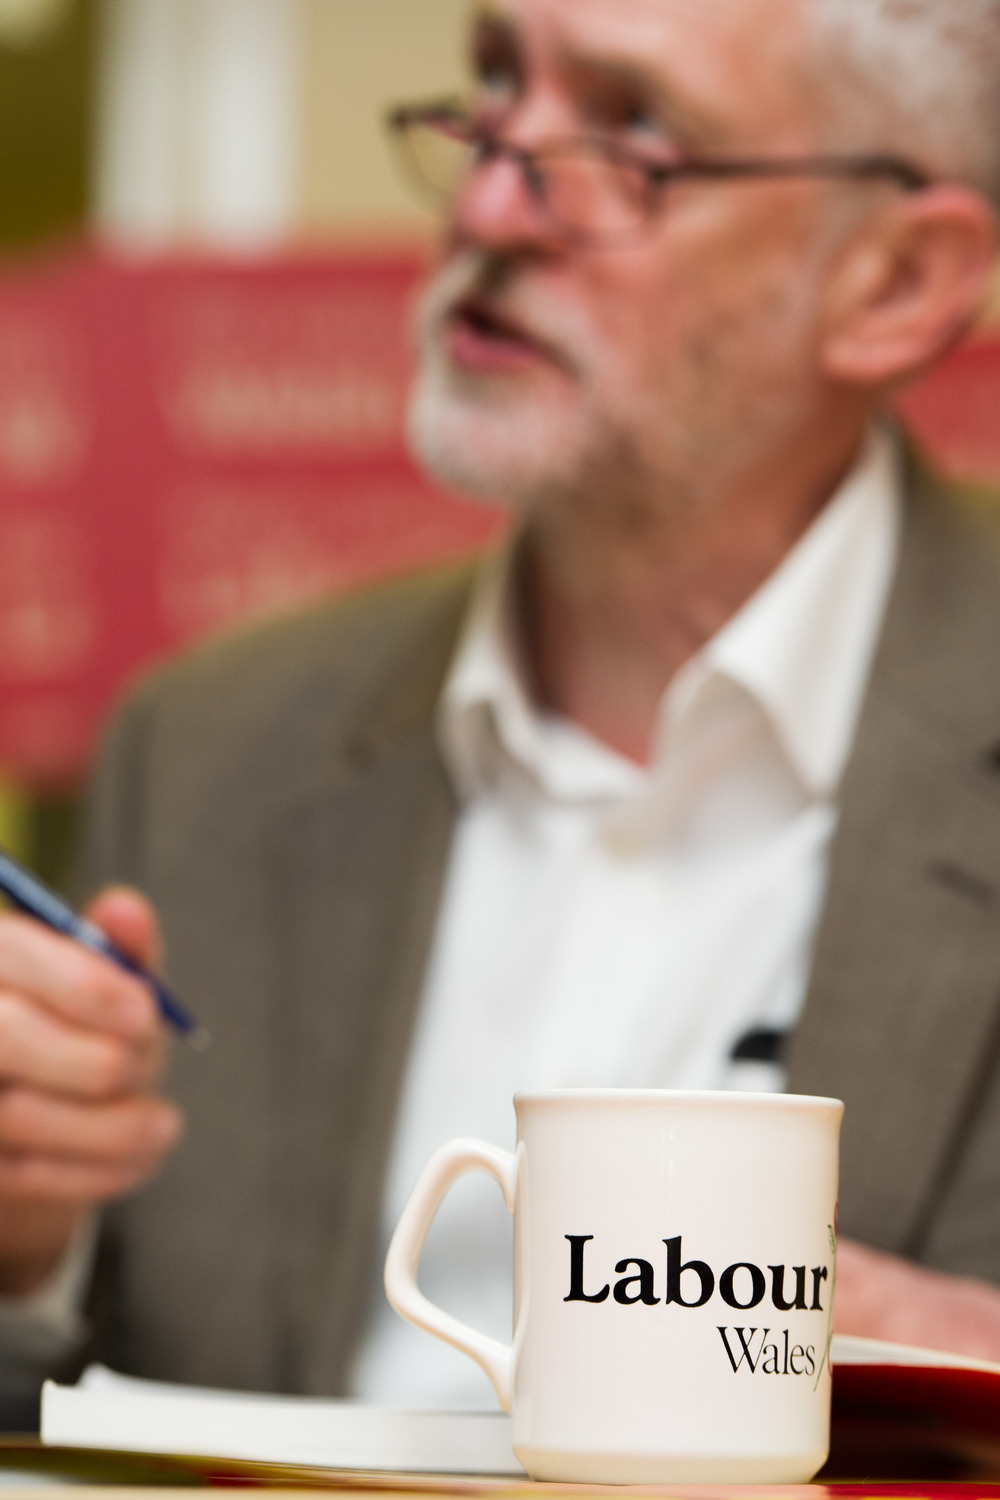 Labour leader Jeremy Corbyn signing a book for a supporter.